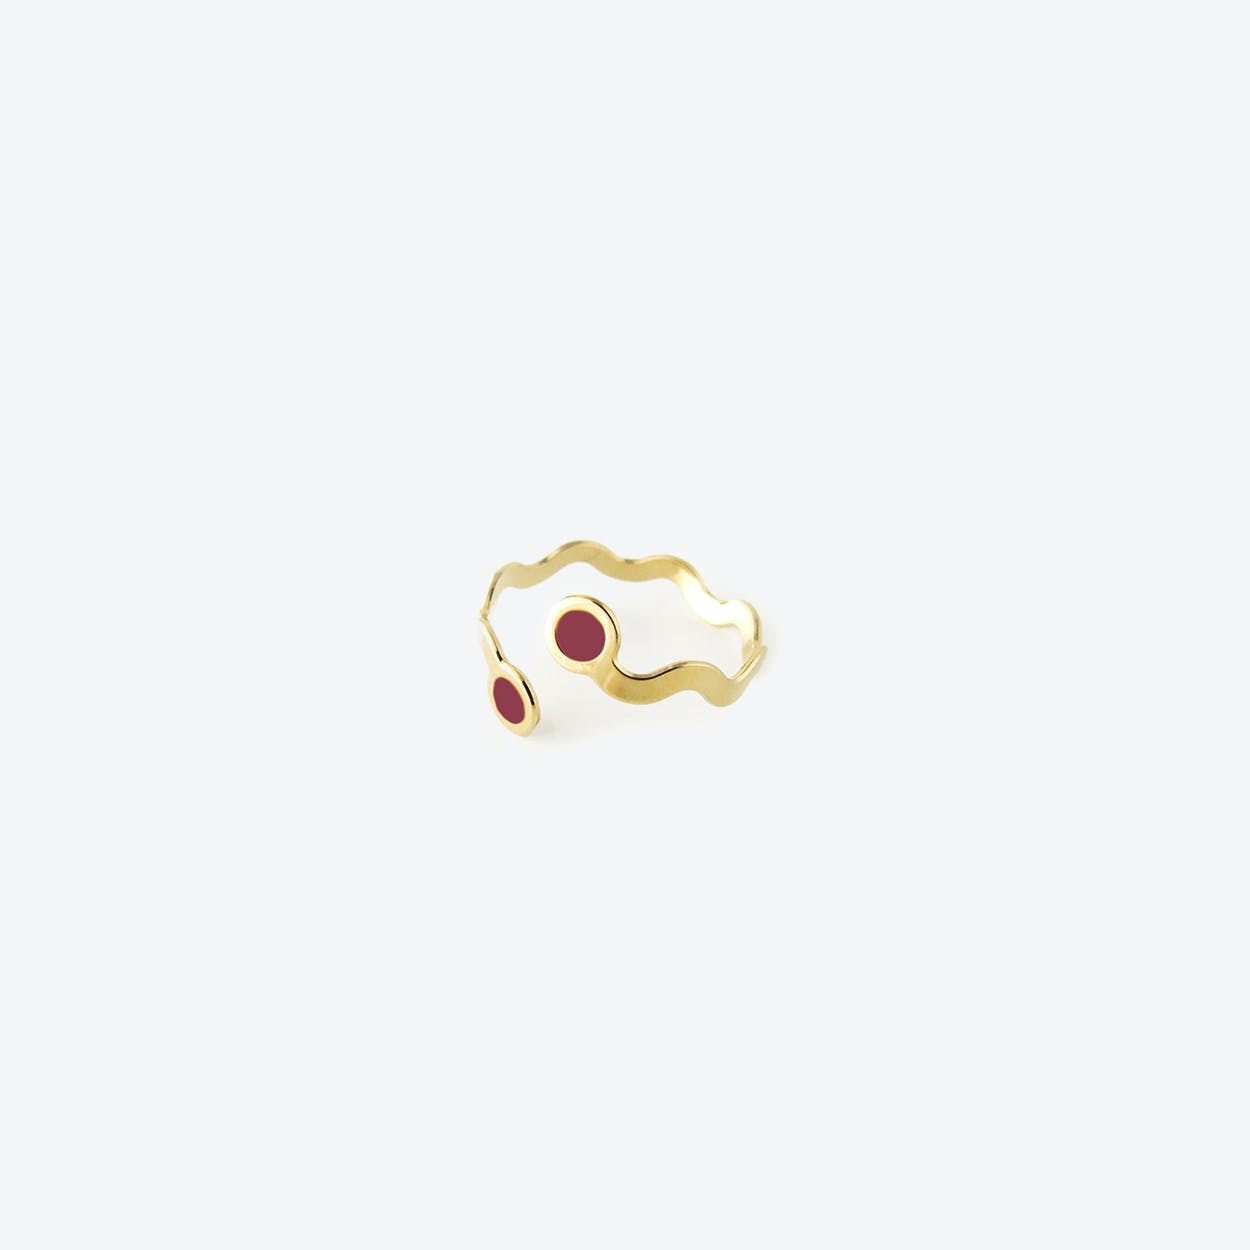 Wavy Gold Ring - Raspberry